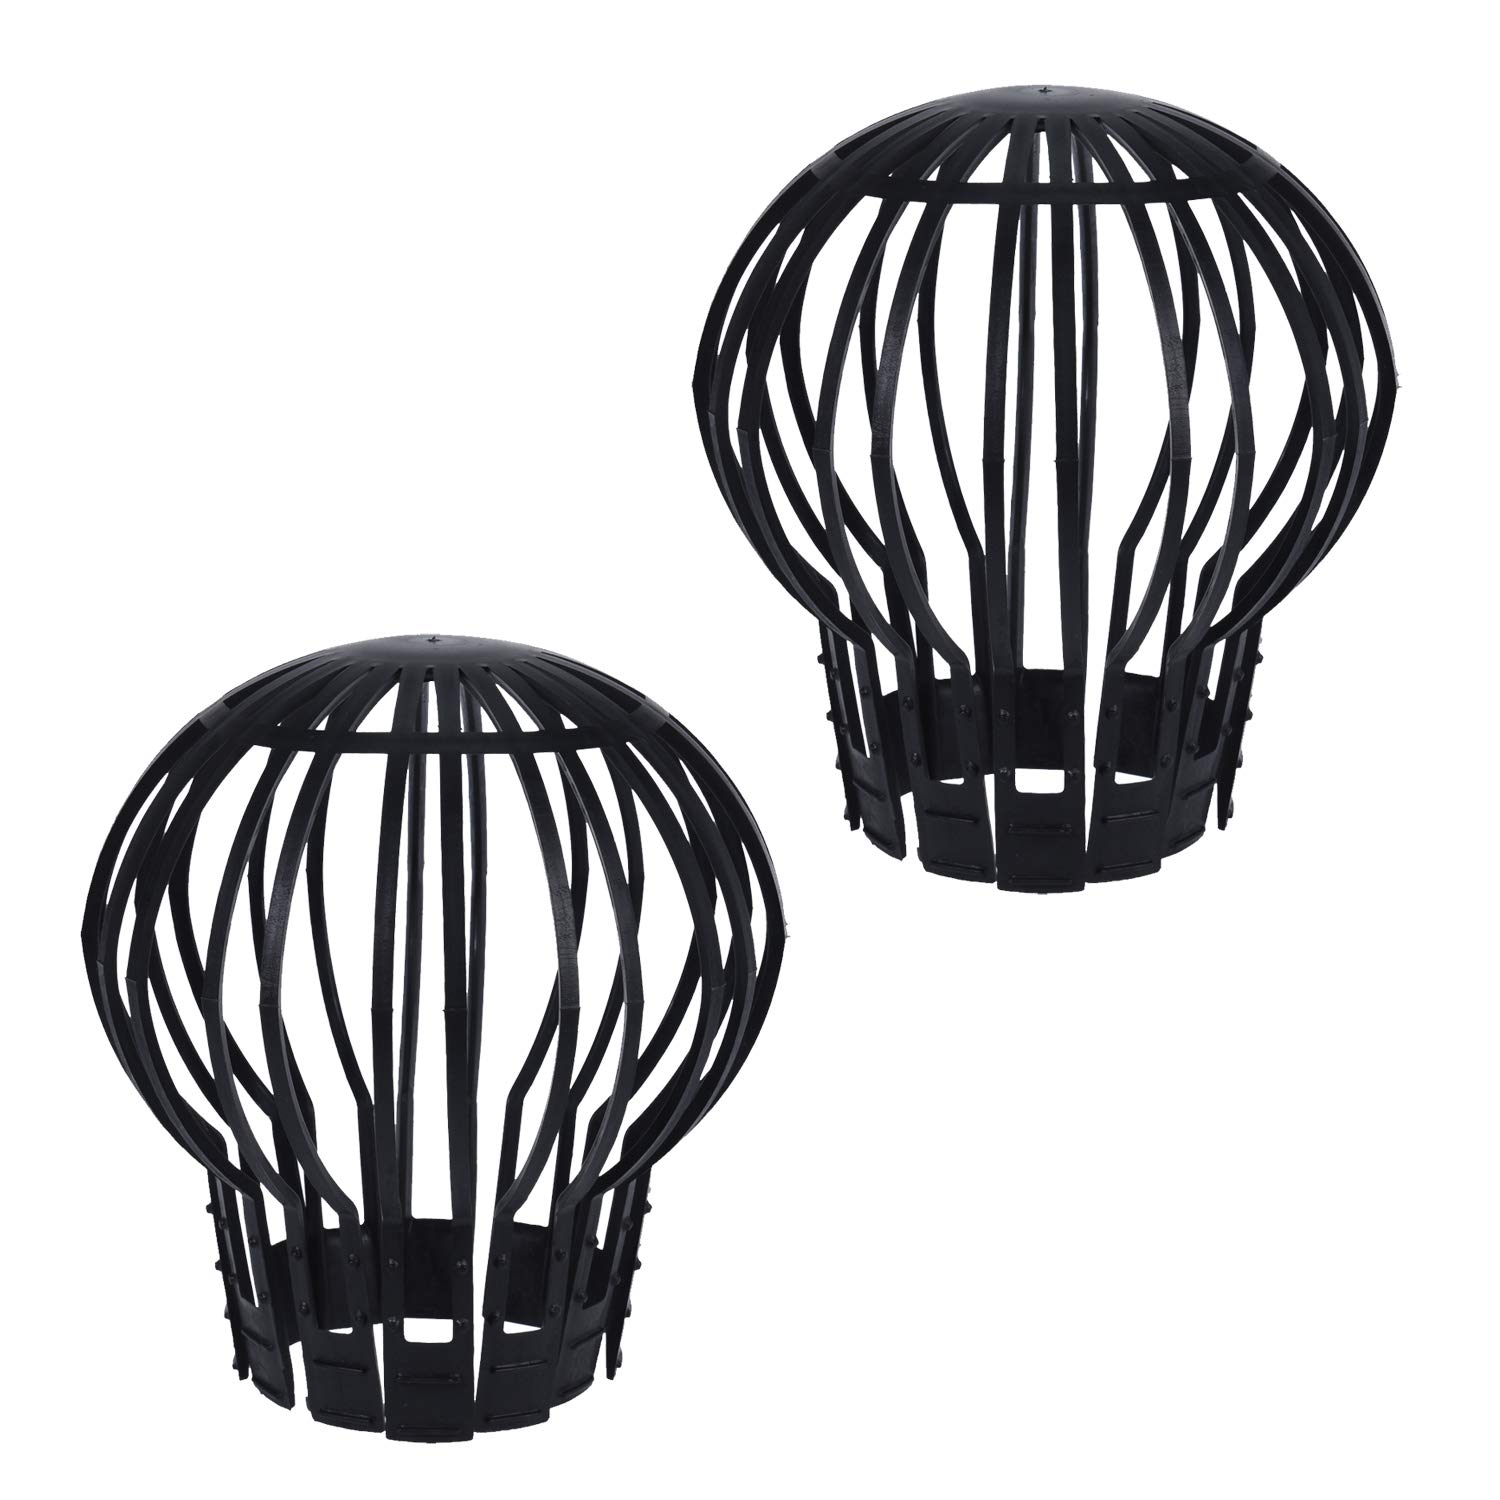 2 x Drainpipe Gutter Leaf Filter Guard Down Pipe Debris Moss Balloon Protection